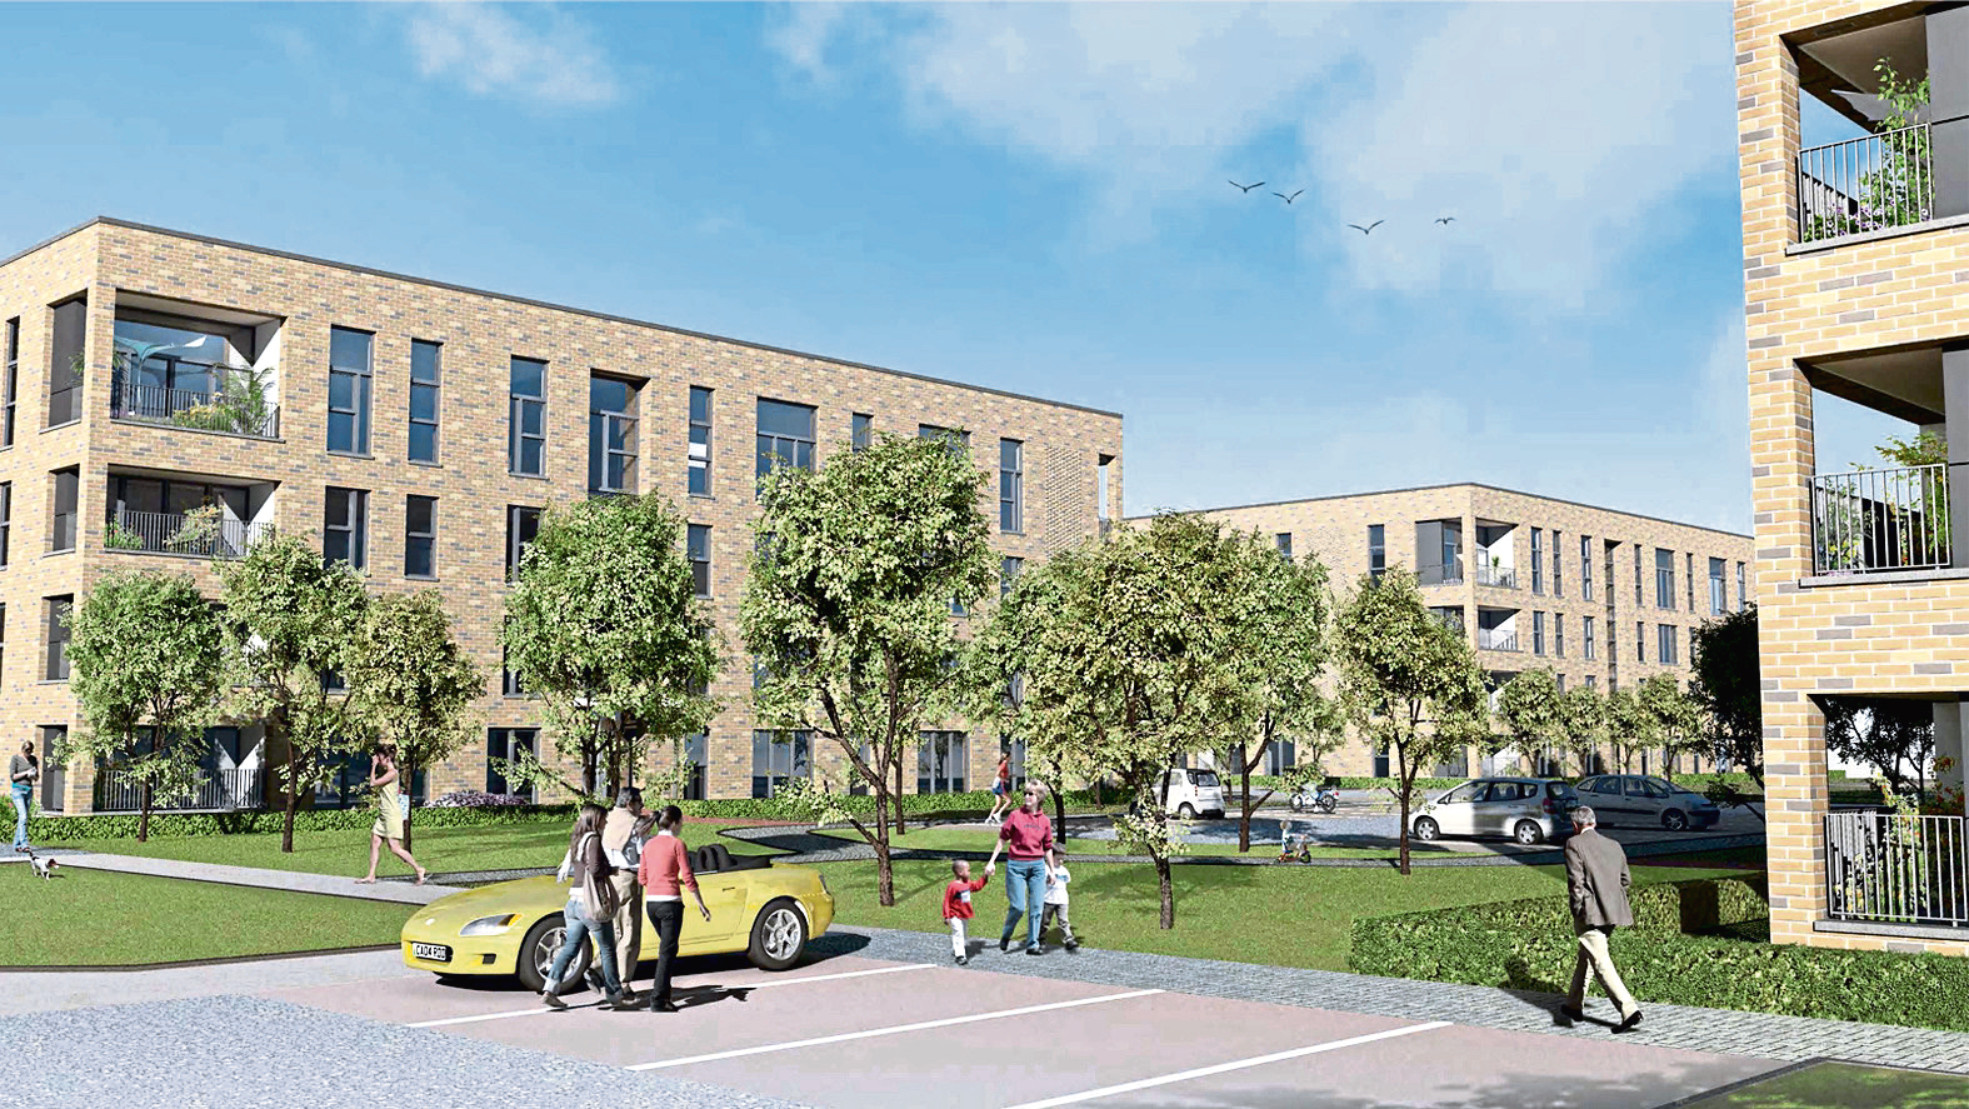 An artist's impression shows what the proposed new homes on the former Summerhill site will look like when completed